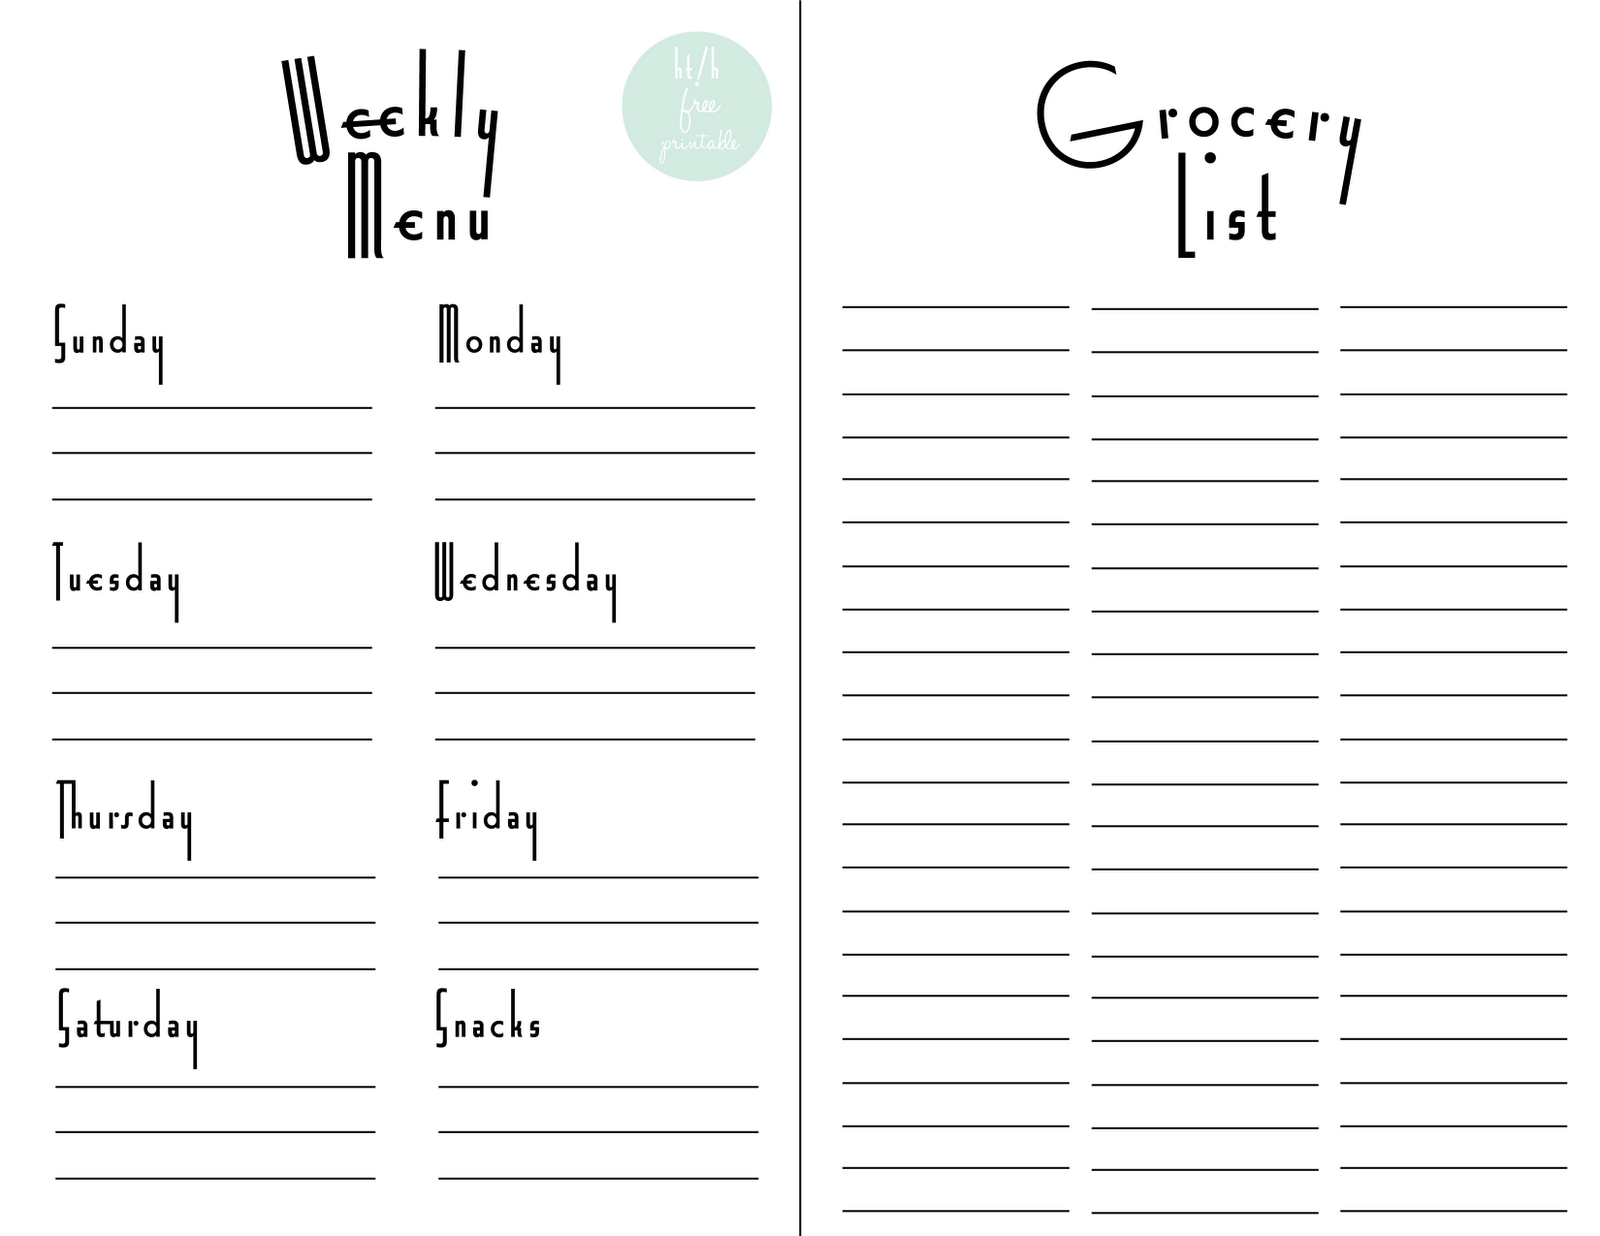 Weekly Meal Planner With Grocery List Template. Weekly Menu Planner Grocery  List Free Printable ...  Free Printable Shopping List Template